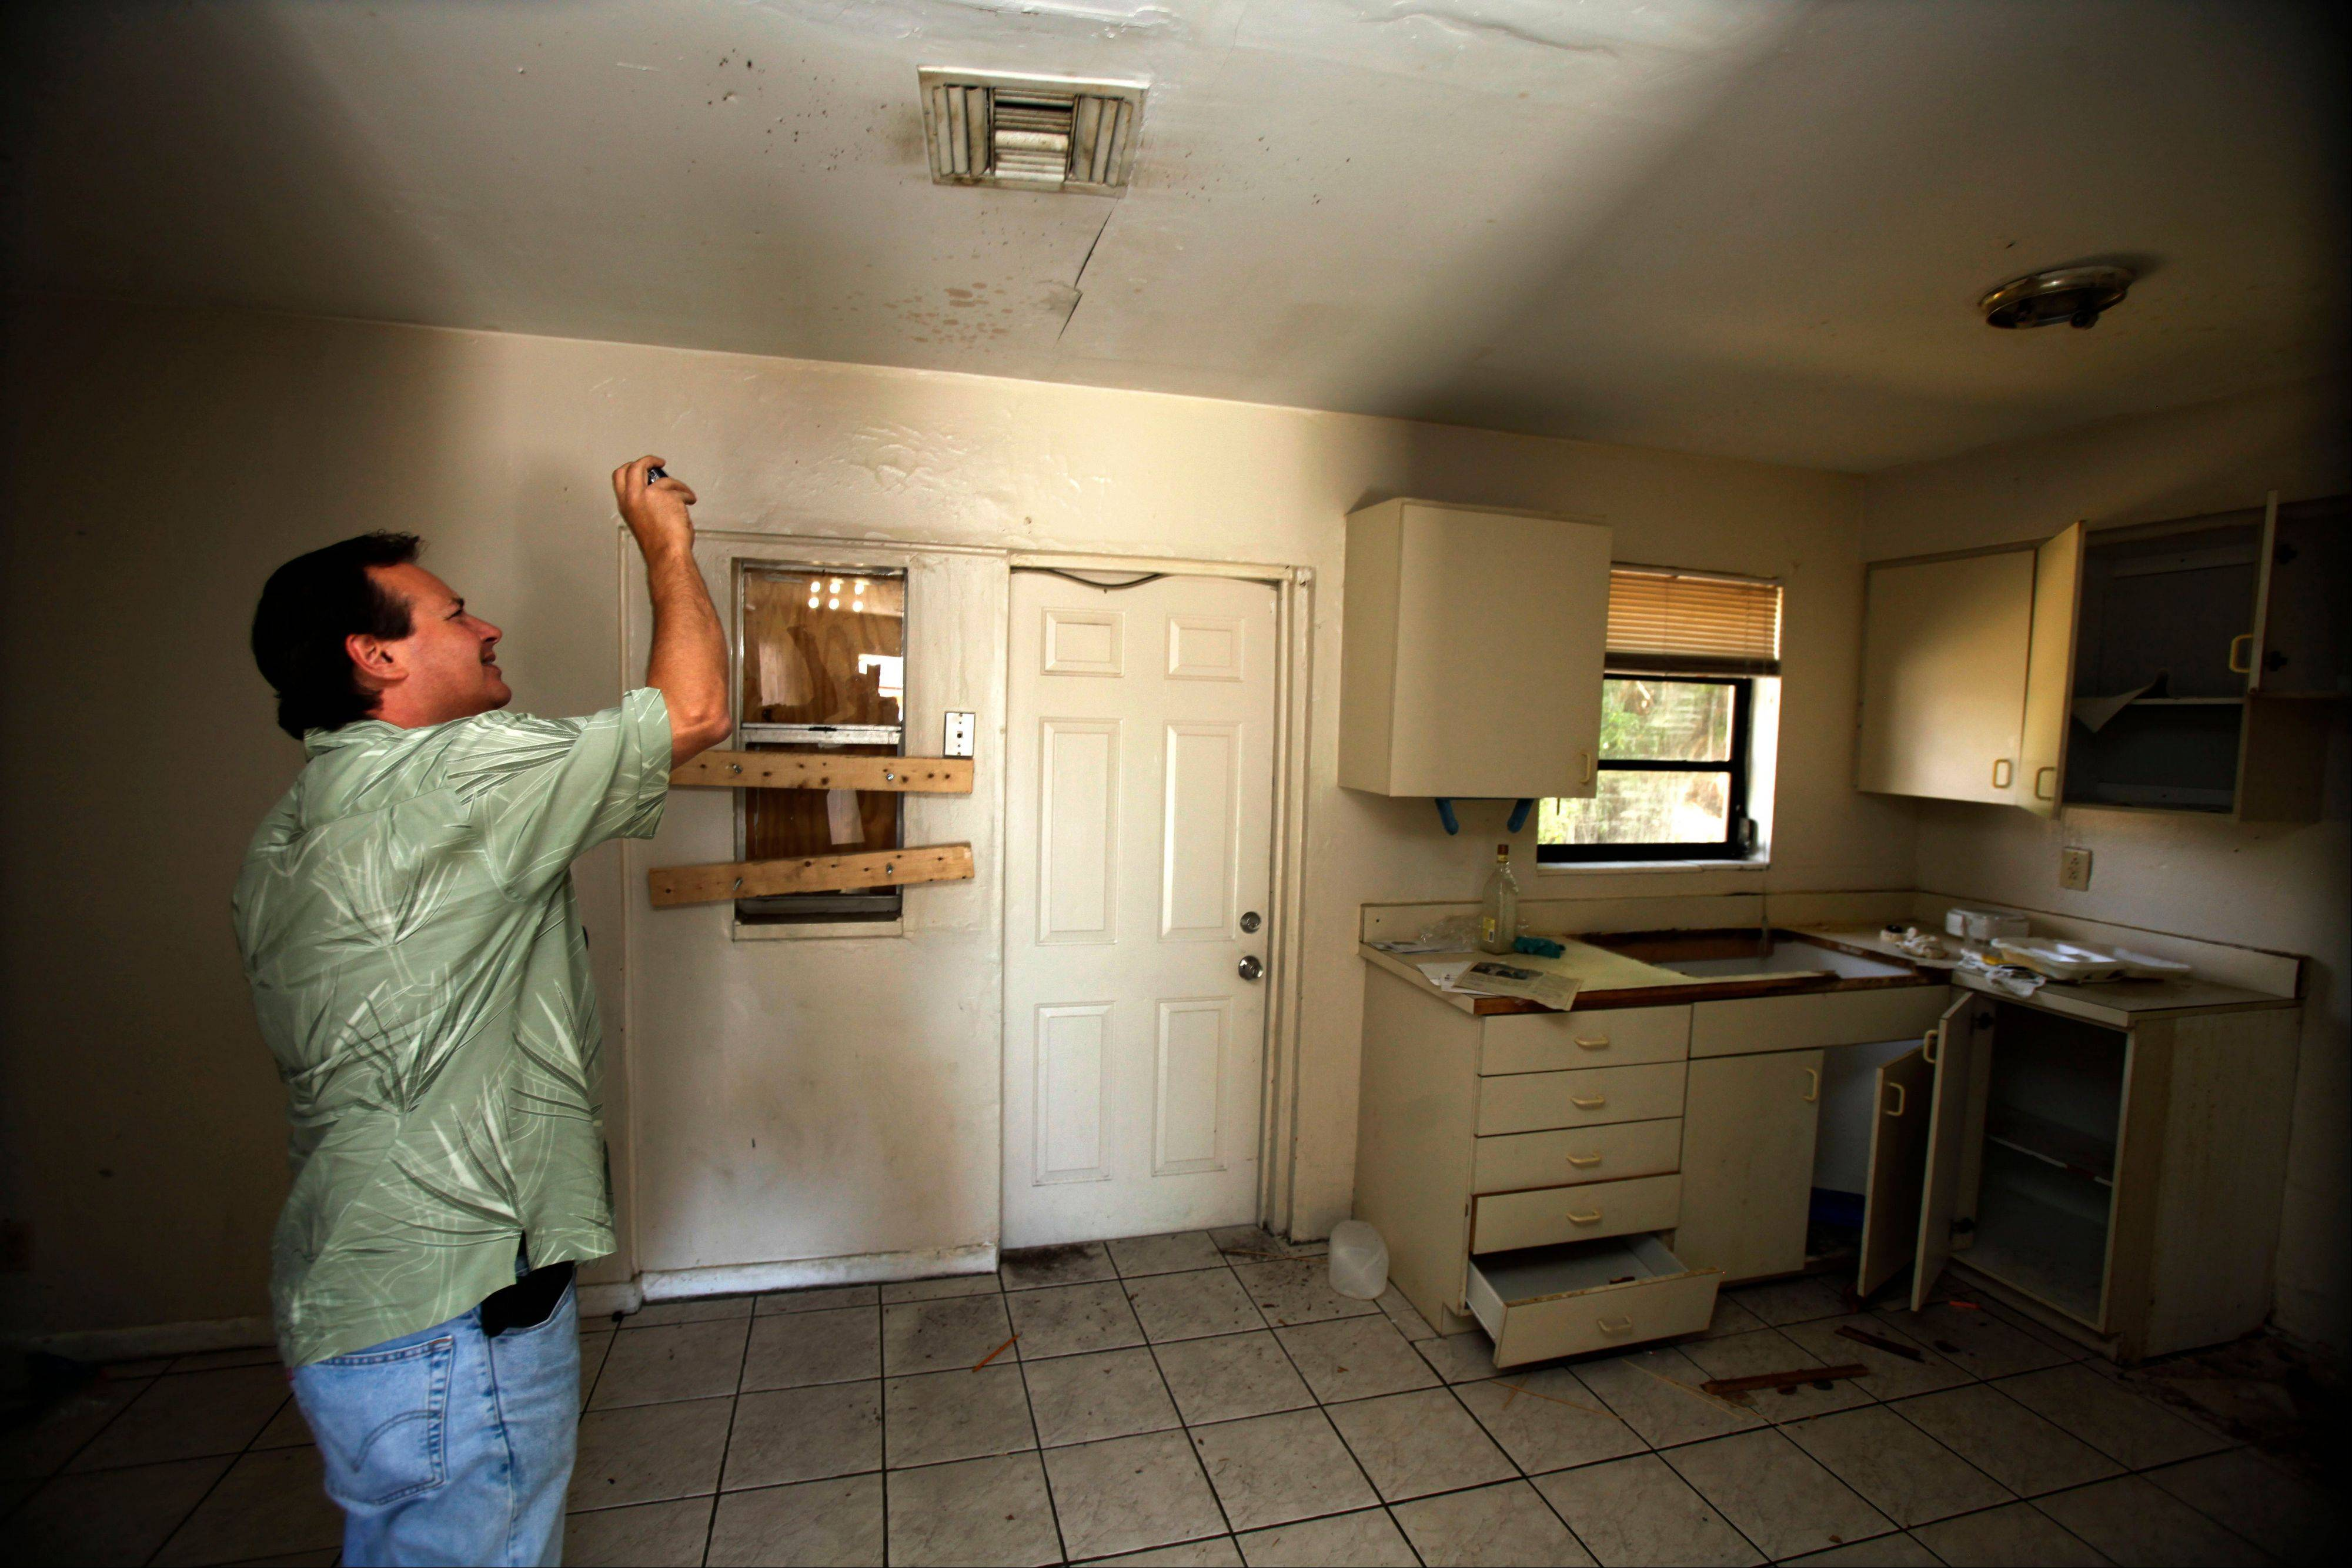 Frank Verna, a real estate agent who specializes in distressed properties, takes photos of a kitchen ceiling while checking a house in West Palm Beach, Fla. Thrashed by the mortgage and foreclosure disaster, Florida has thousands of distressed properties. But figuring out just how many is not so simple. Each month, analysts issue reports detailing the number of homes nationwide in foreclosure or held by banks. The implication is that if we can just find a cure for these loans and homes, either by matching buyers with houses or helping the borrowers stay put, the economy will at last be able to heal.